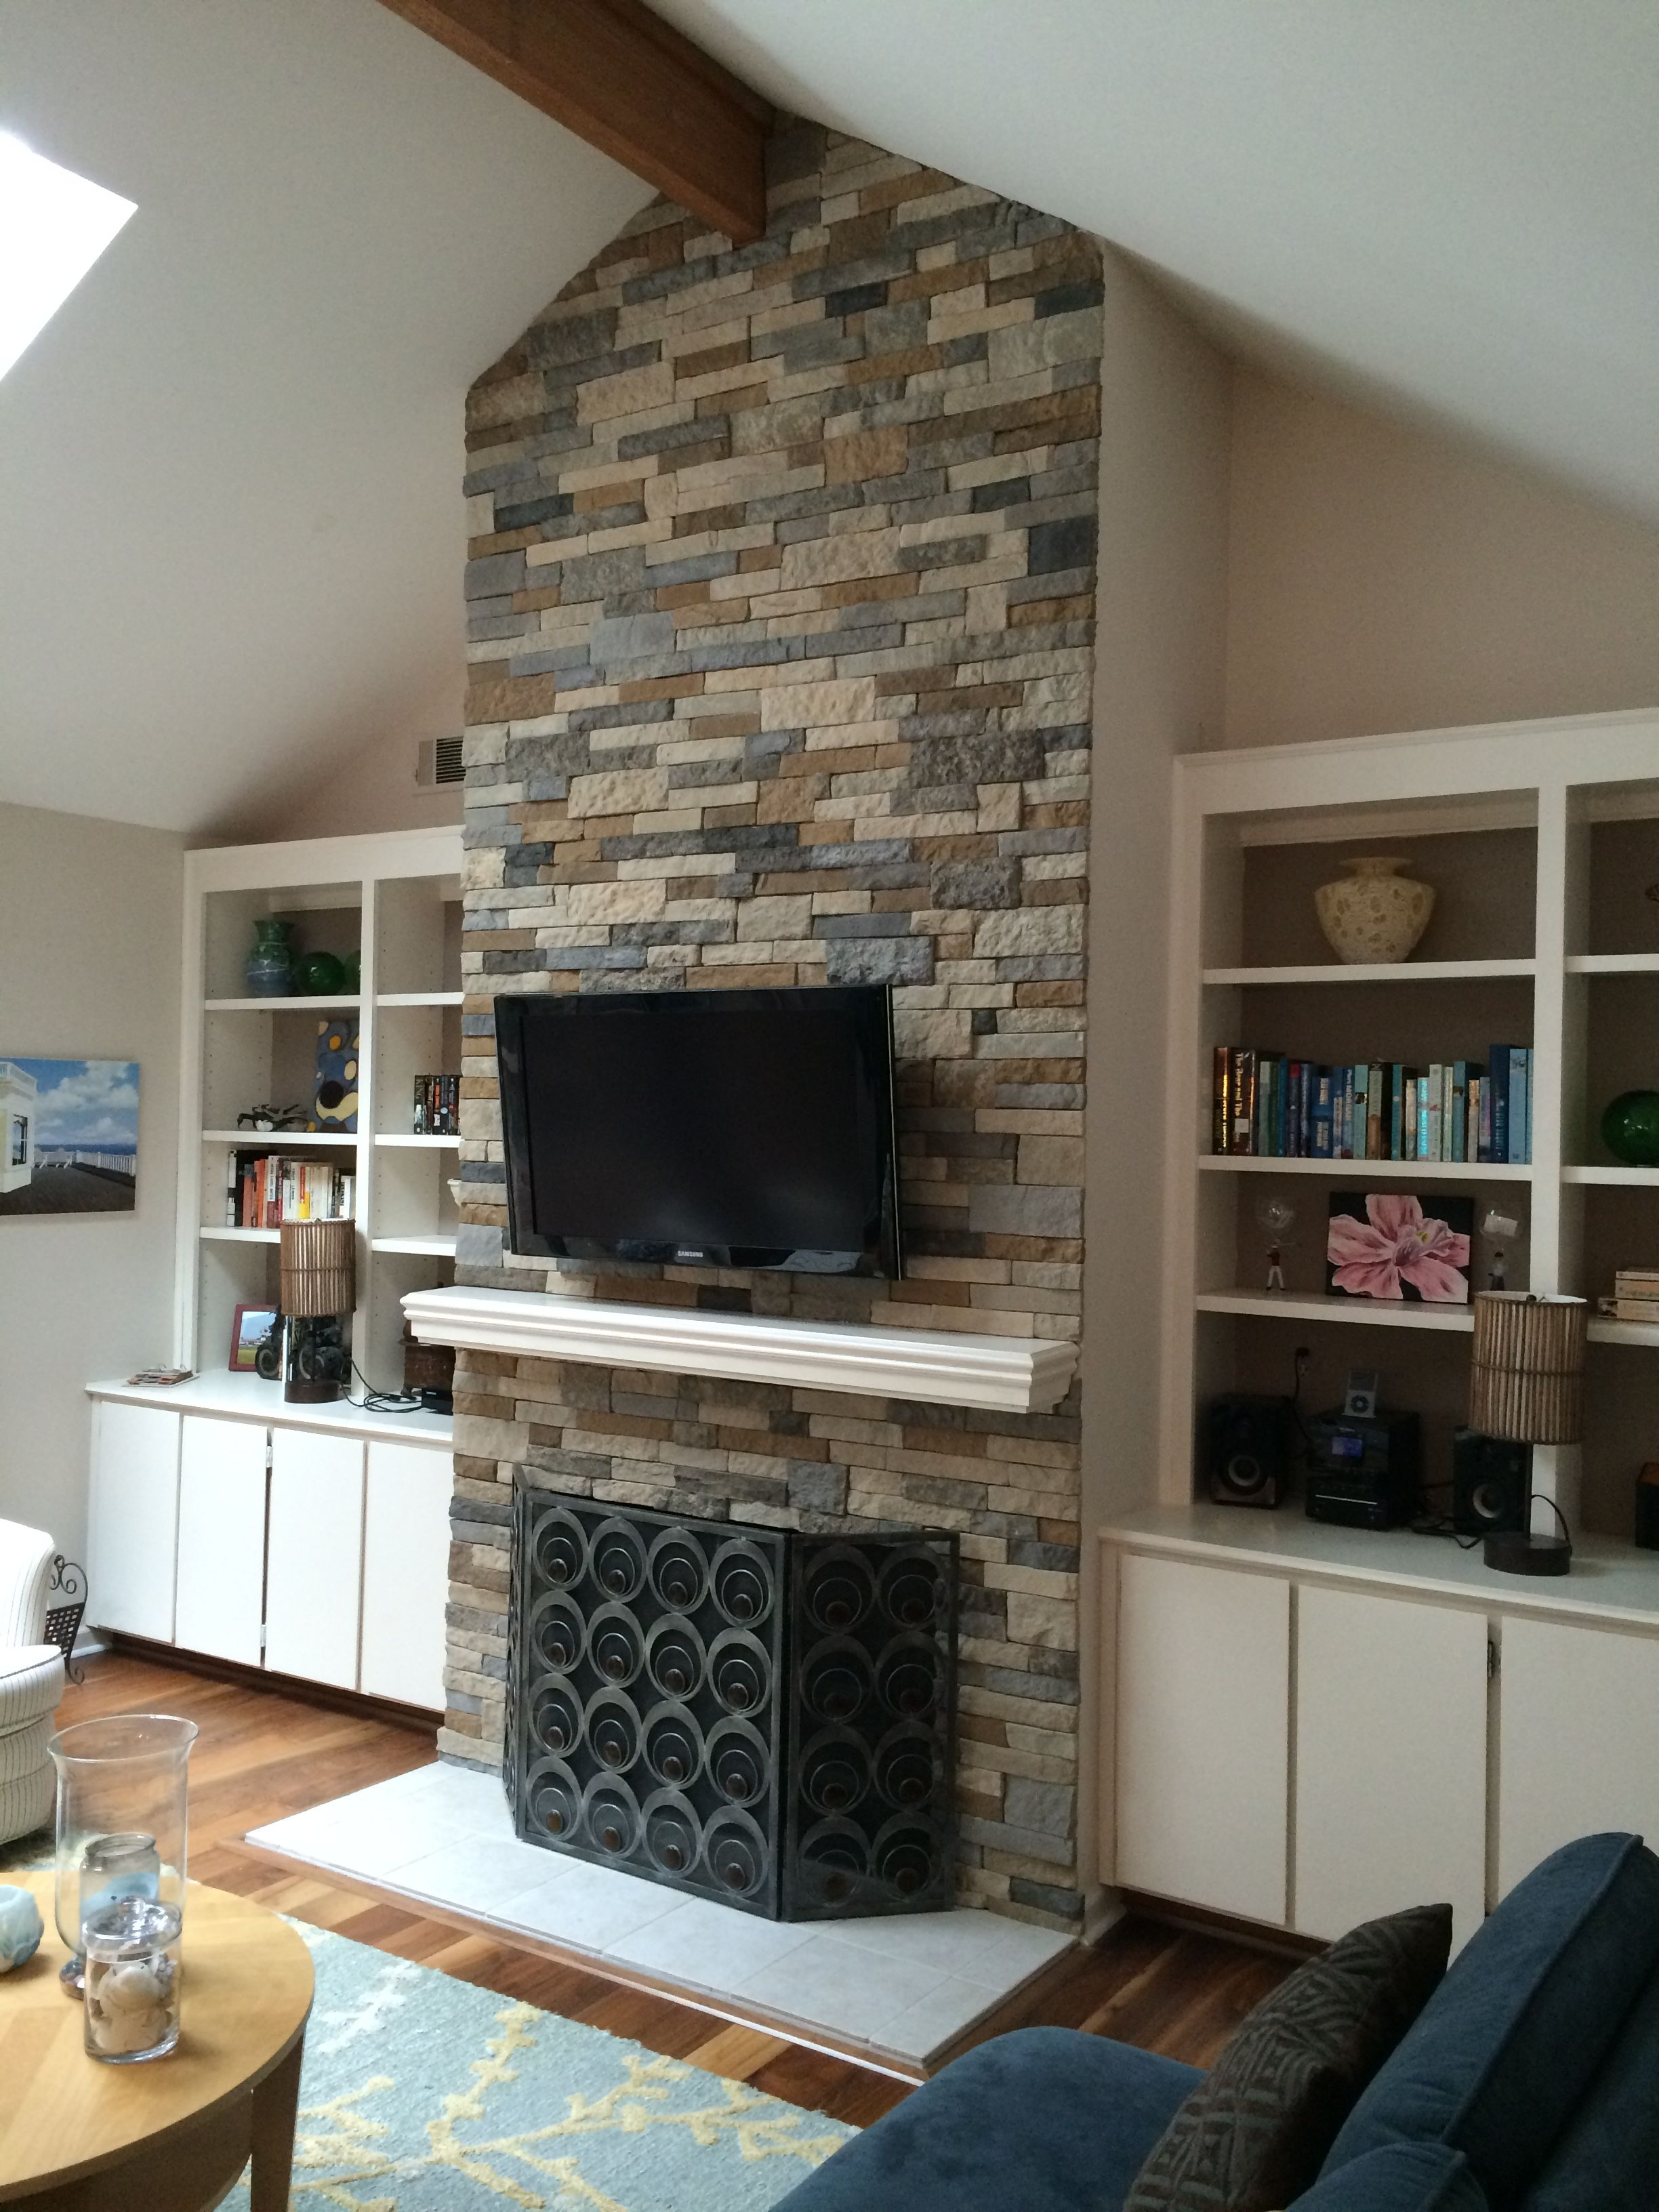 Updated Fireplace using Airstone Airstone fireplace